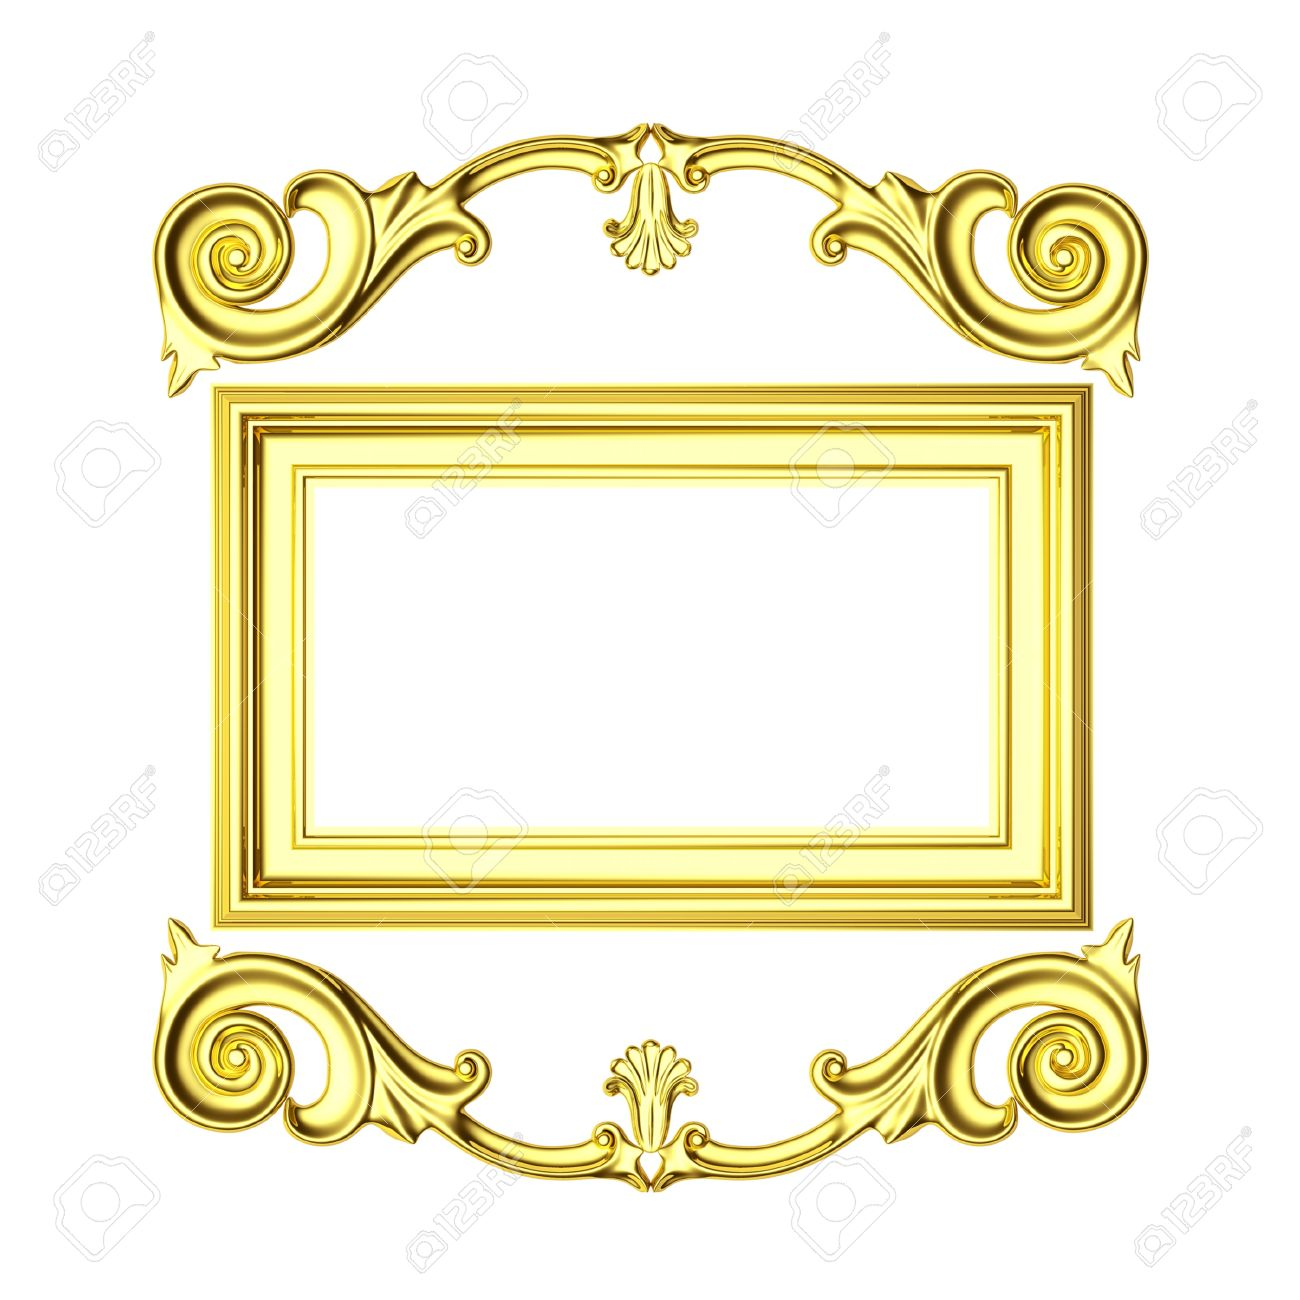 3d Gold Frame, The Sculptural Form On A White Background Stock Photo ...